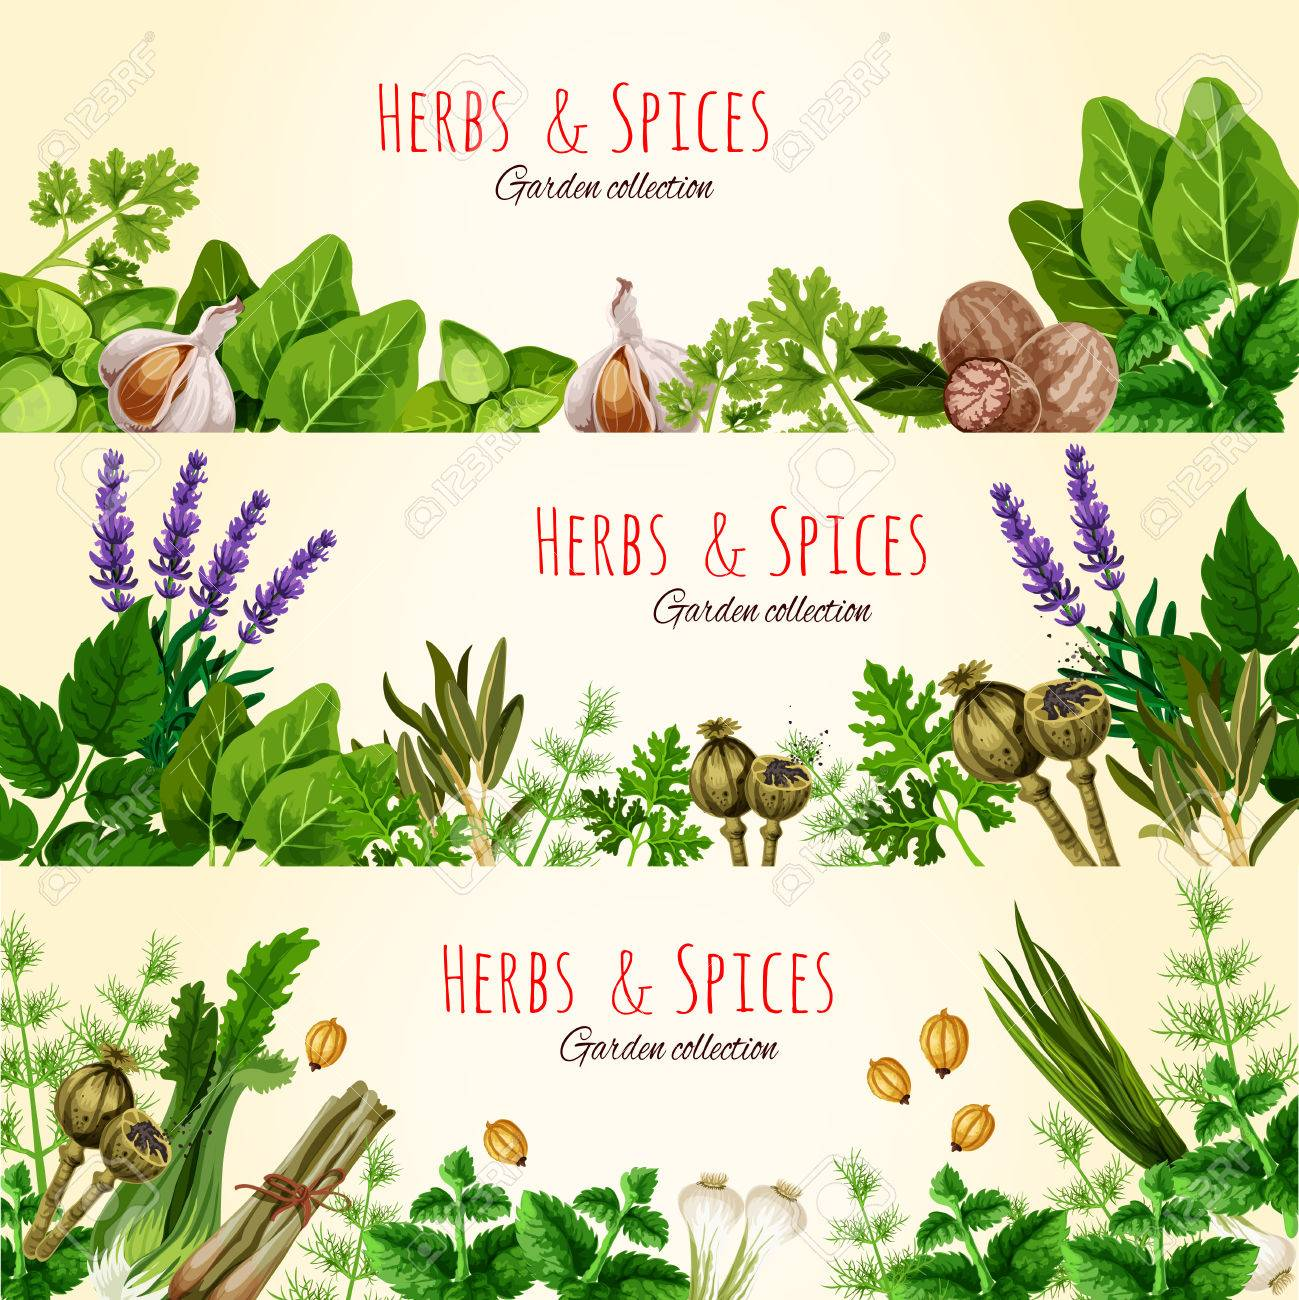 Fresh Green Herbs And Spices Banner Set Royalty Free Cliparts Vectors And Stock Illustration Image 74733788